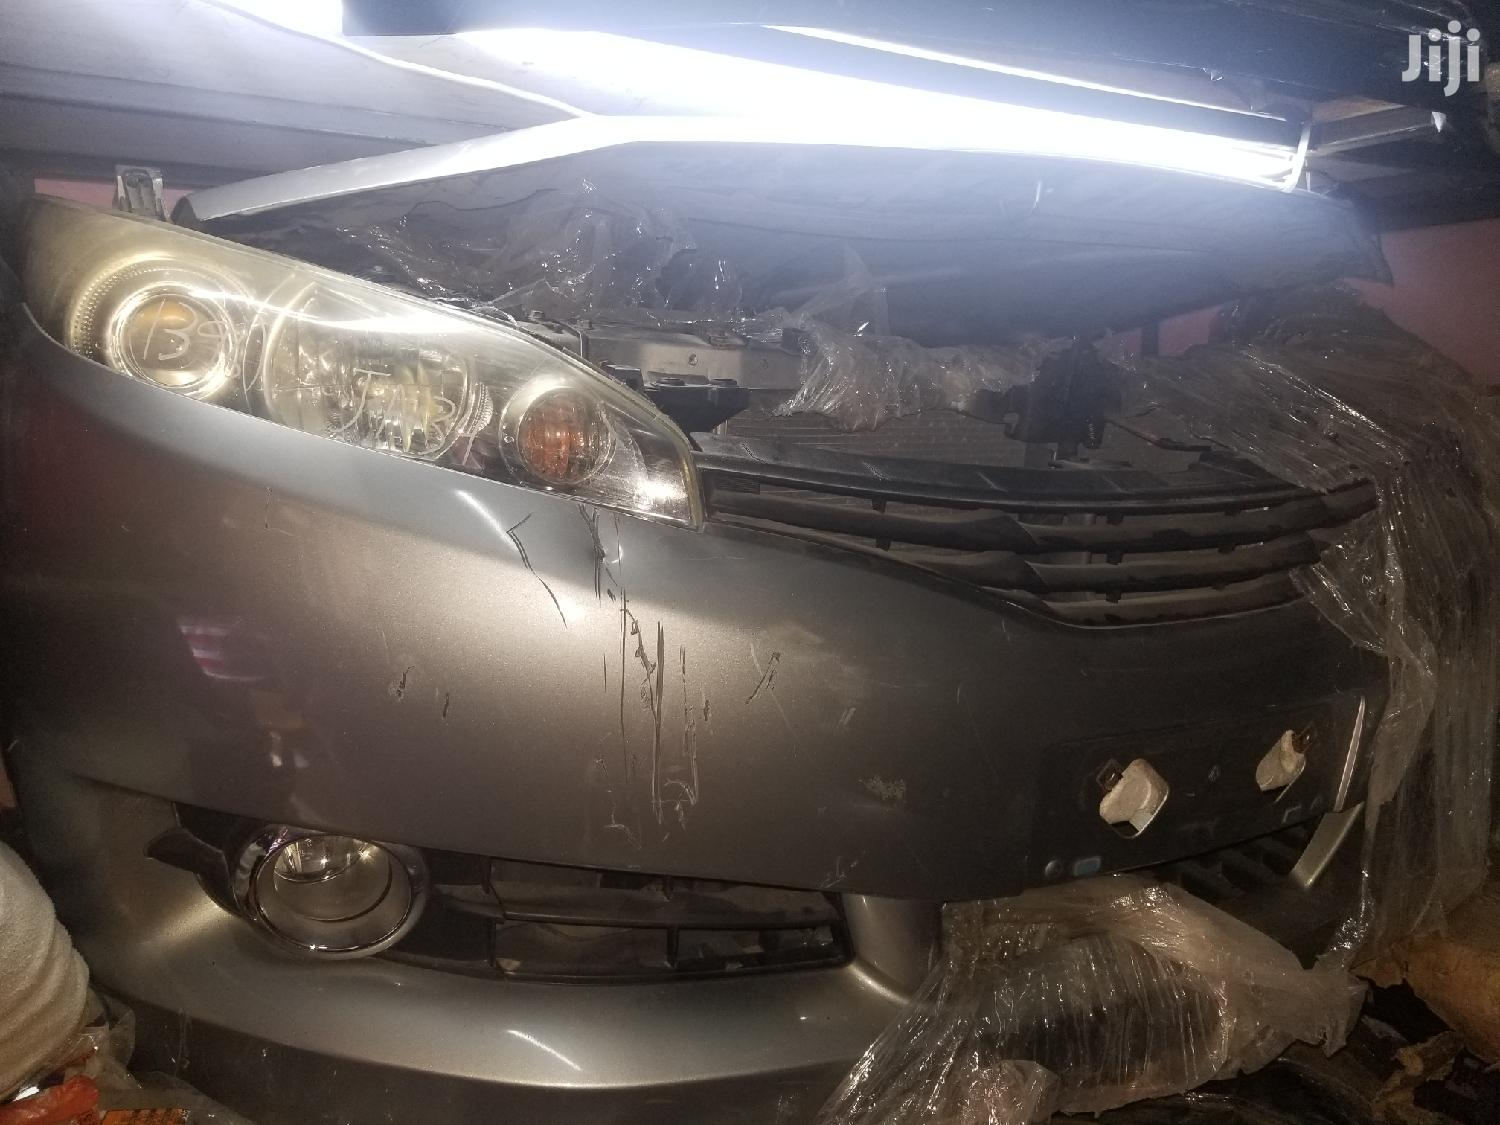 Wish 2010 Xenon Nosecut Auto Car Body Parts | Vehicle Parts & Accessories for sale in Nairobi Central, Nairobi, Kenya